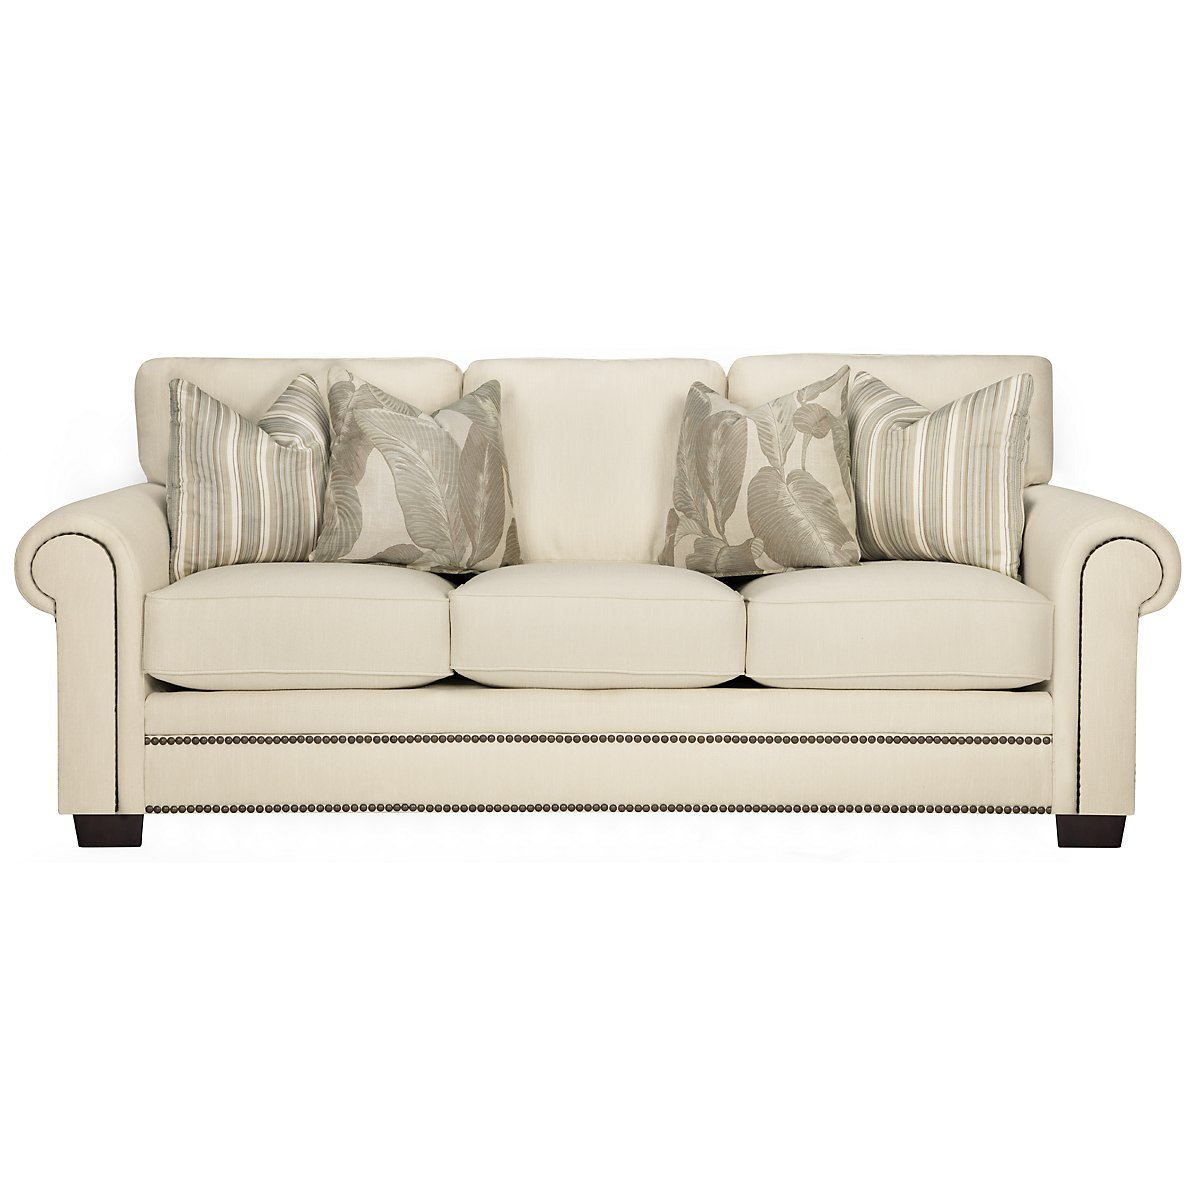 Fresh White Fabric Sofa 65 With Additional Sofa Table Ideas with White Fabric Sofa